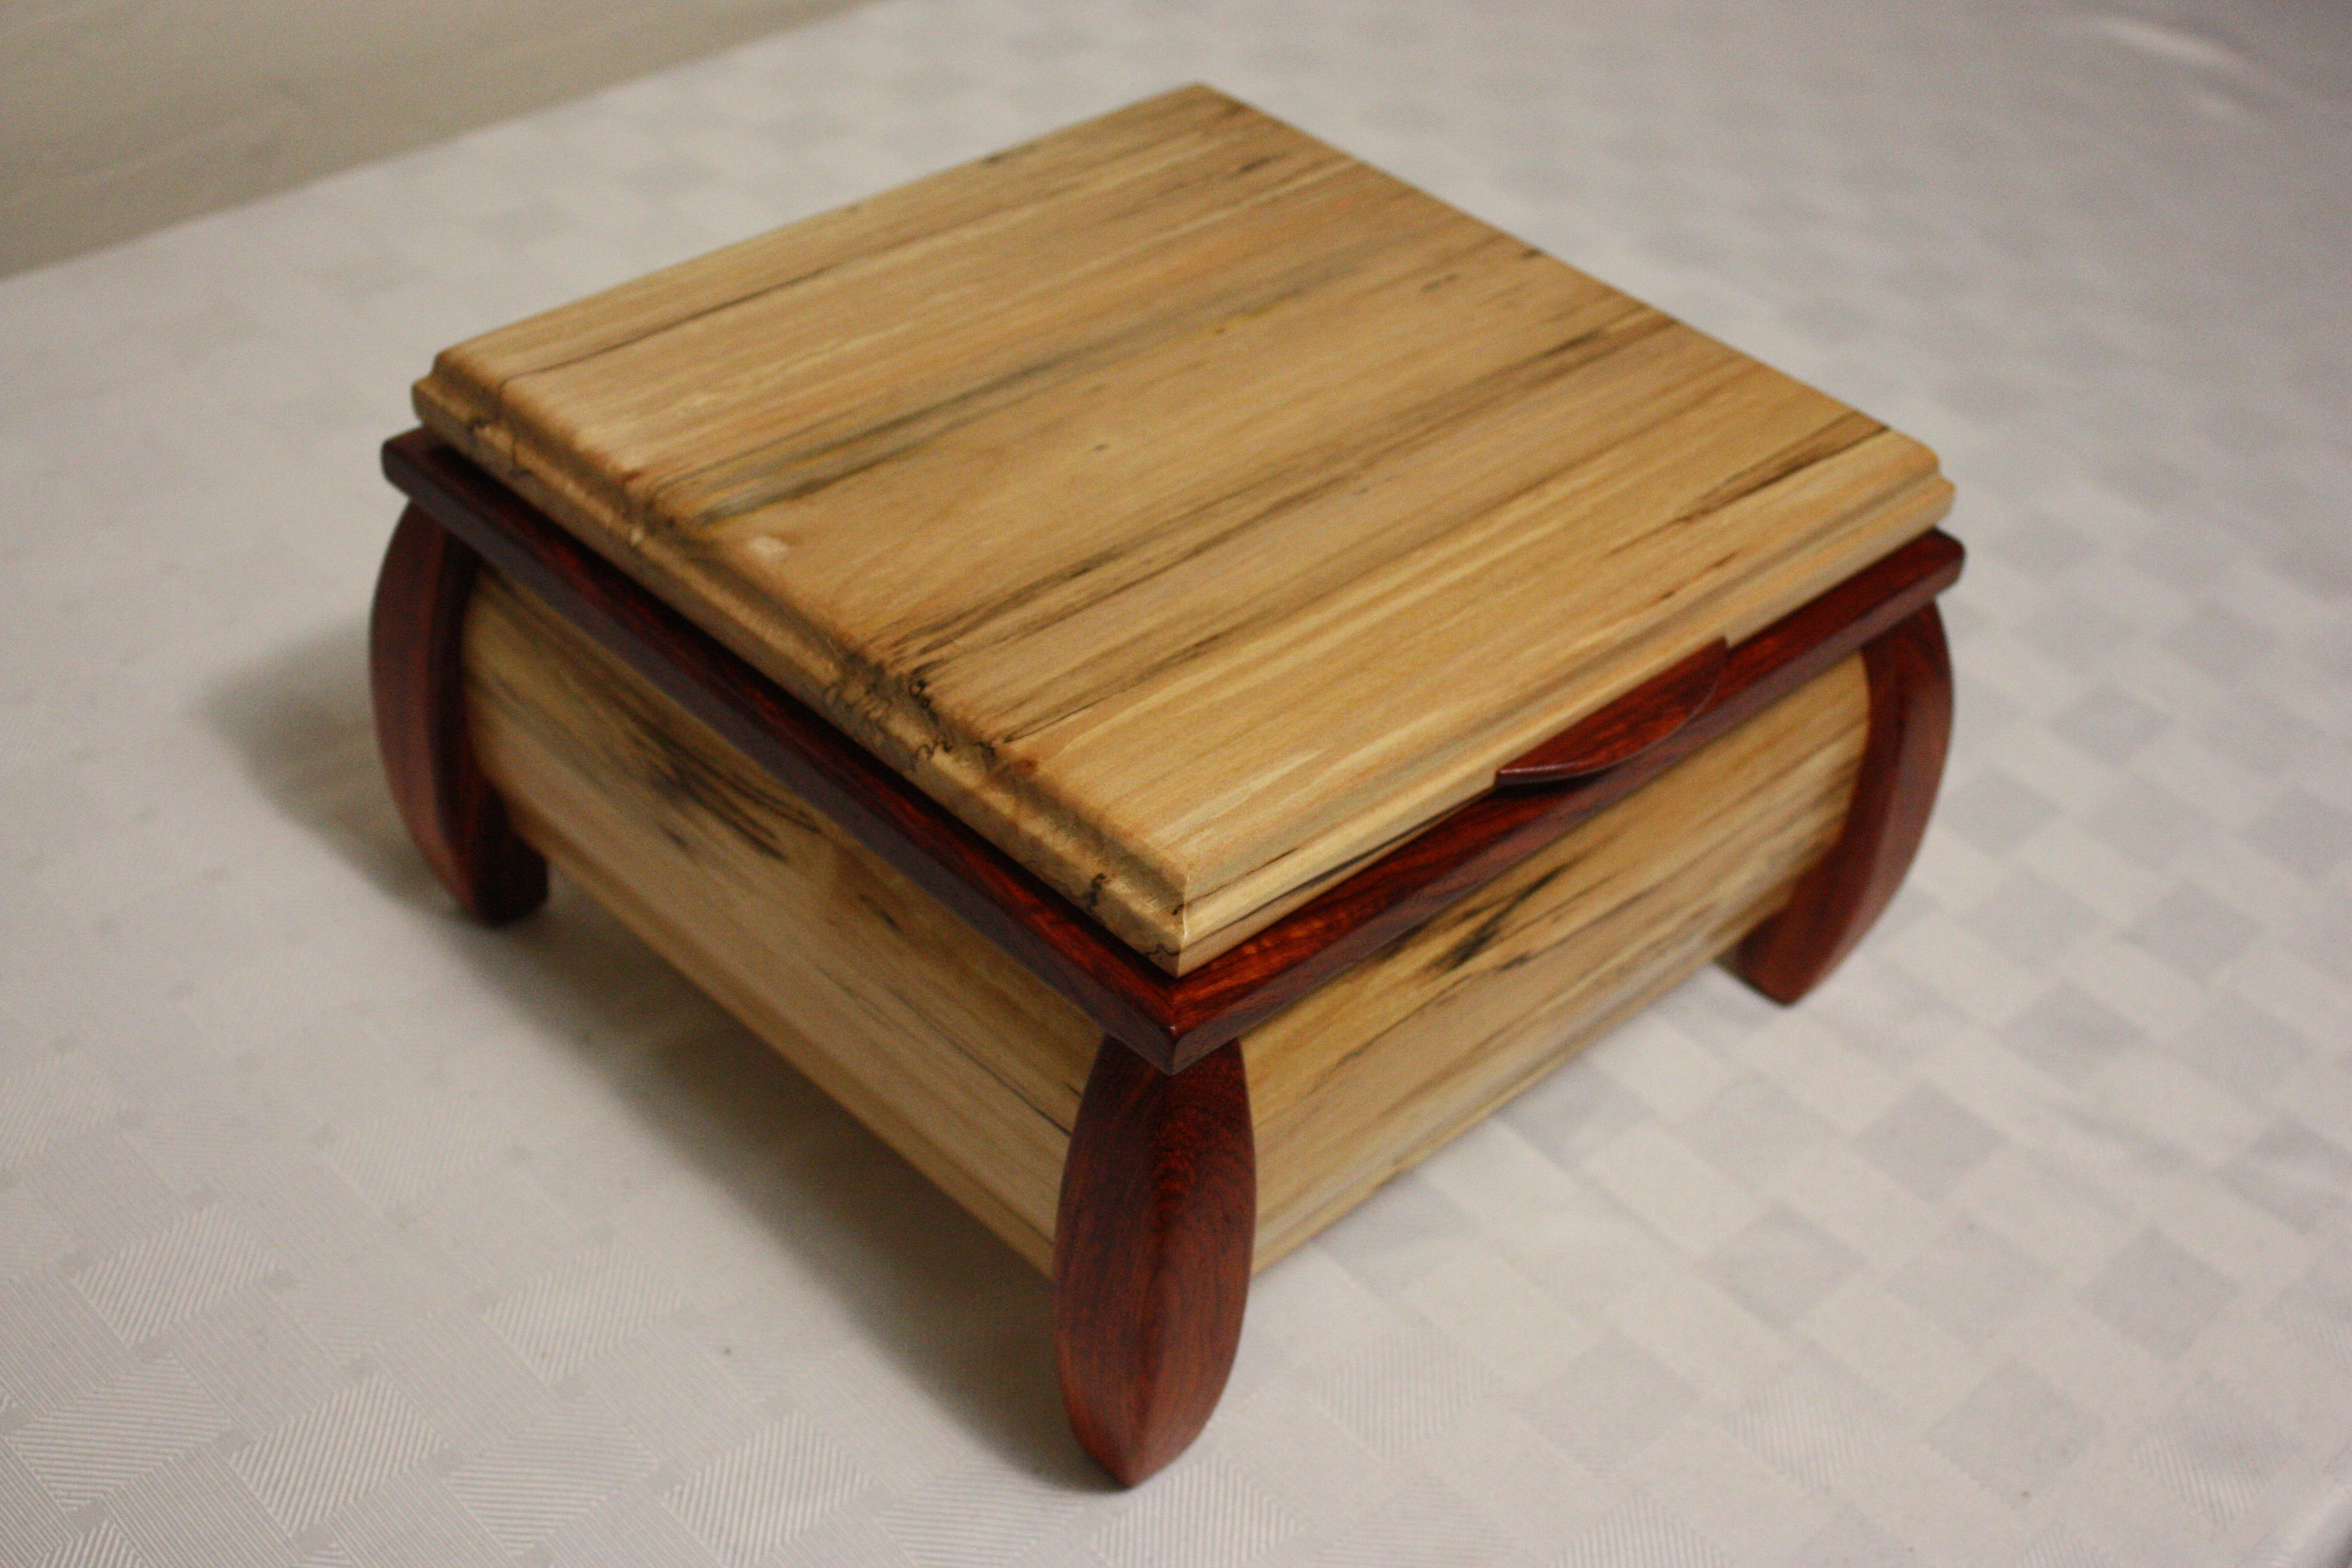 Pin by Mike True on Wood Boxes Pinterest Wood boxes and Woods